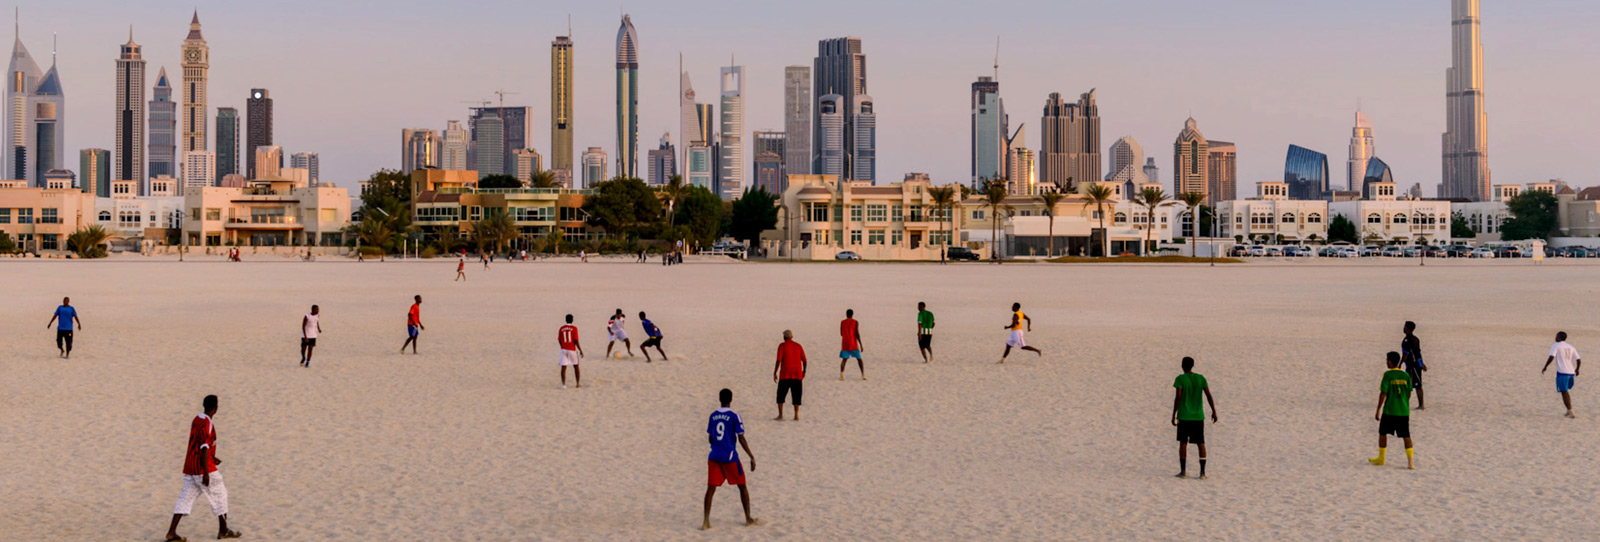 FirstLook: Jumeirah Beach, Dubai